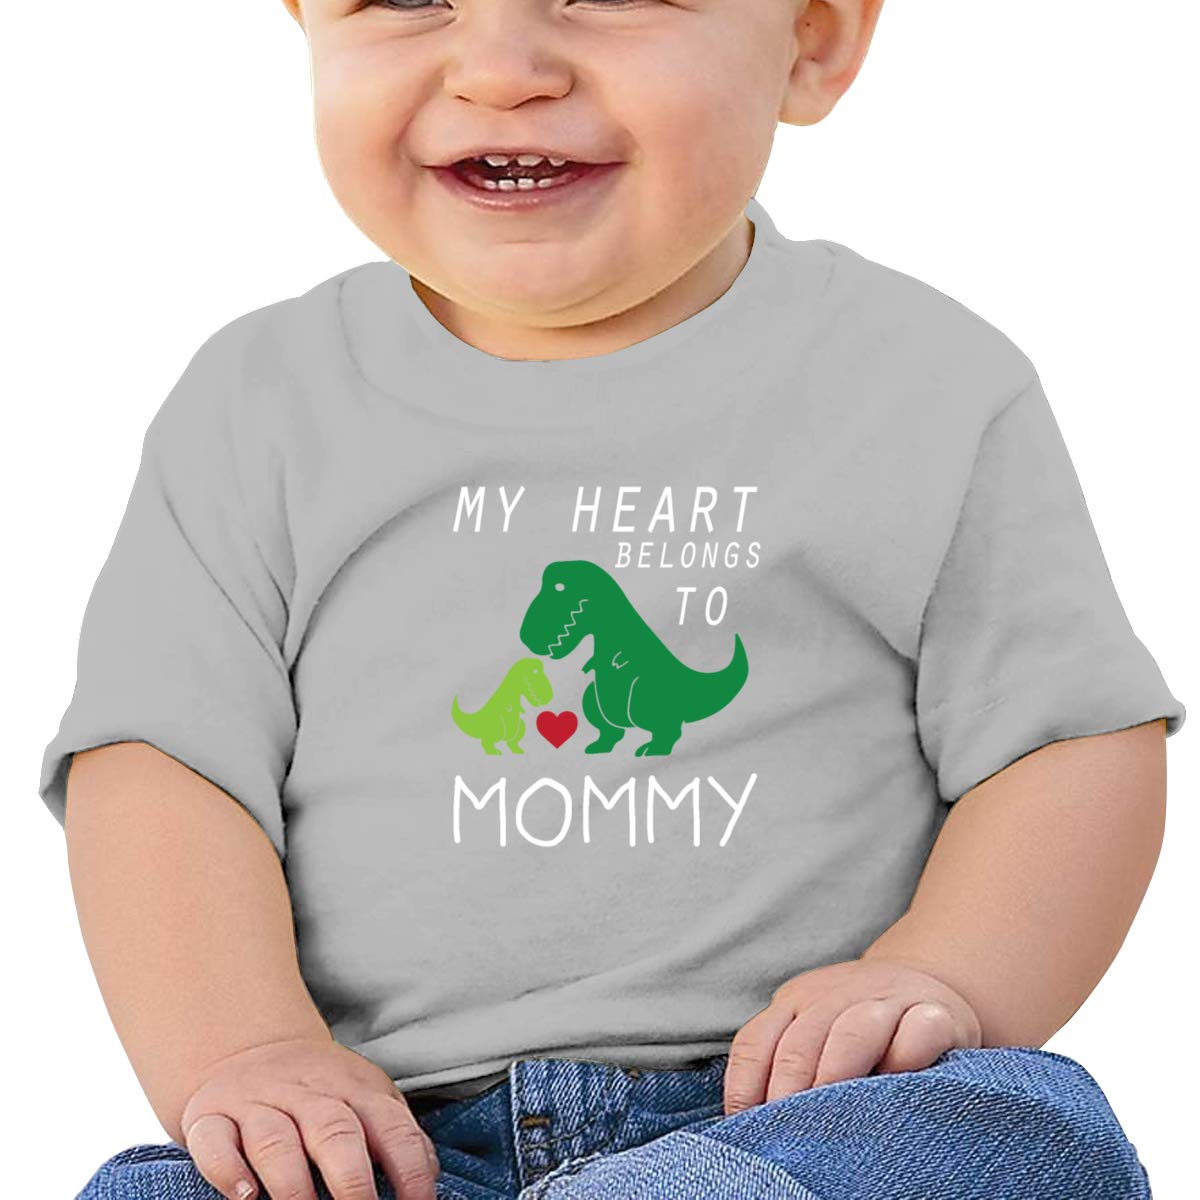 Arsmt My Heart Belongs to Mommy Toddler Short Sleeve Tshirt Girls Birthday Gift